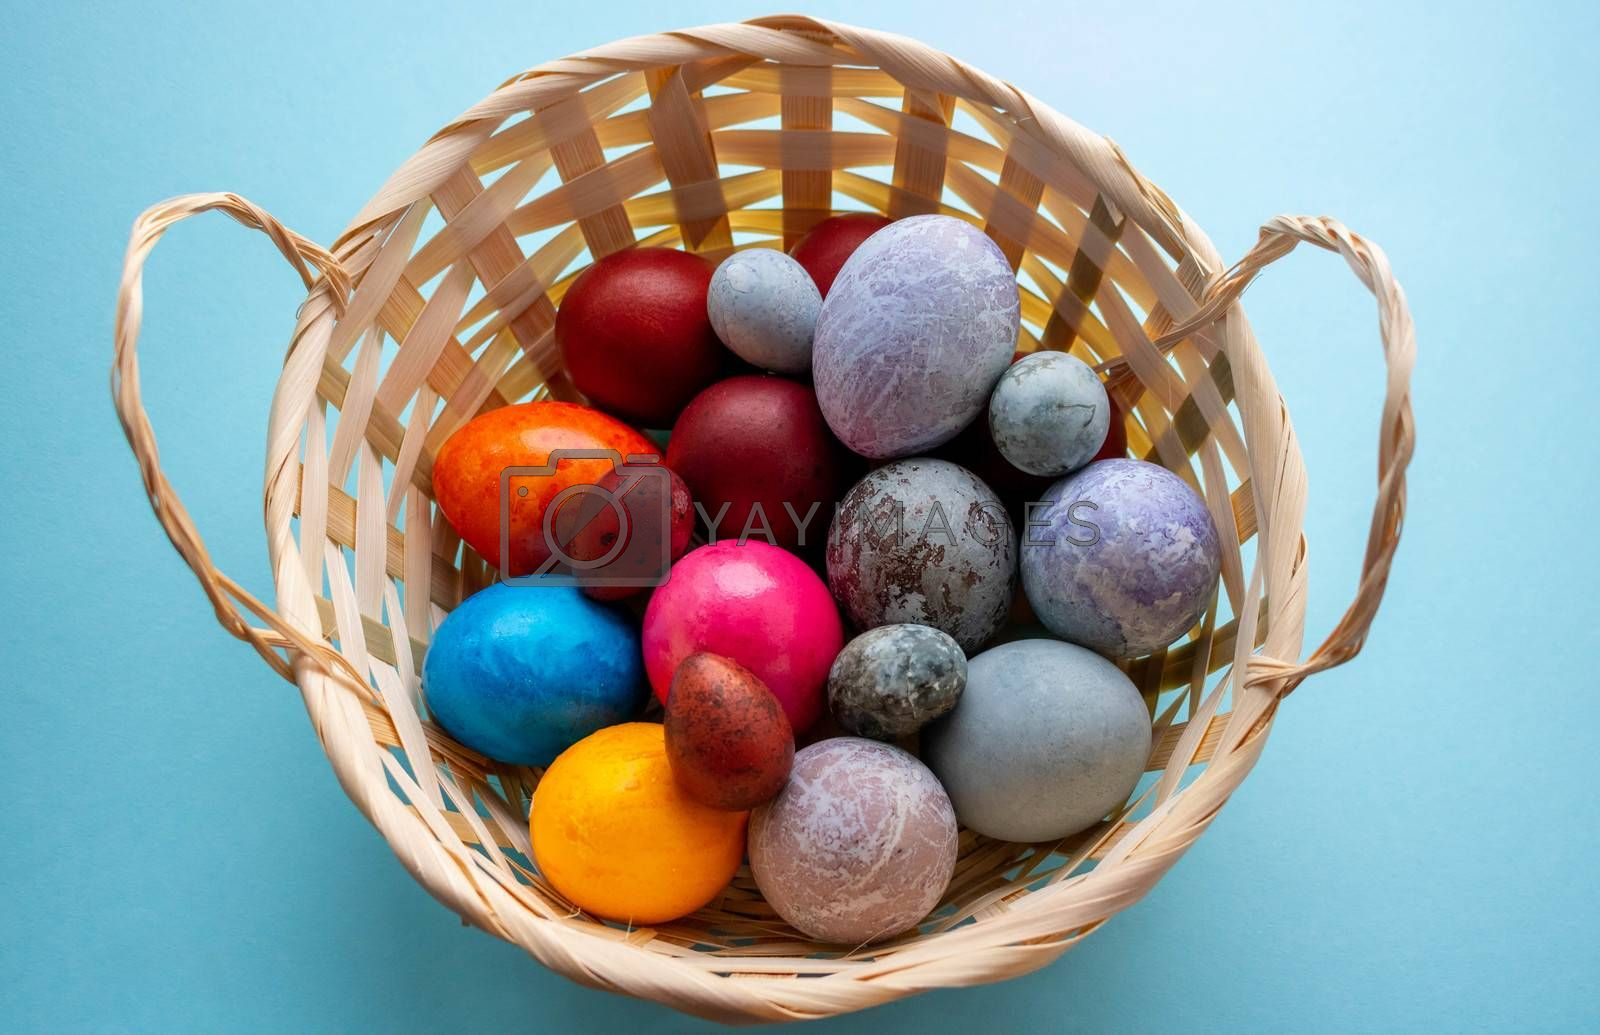 On a blue background, a basket with colorful Easter eggs.The Concept Of Easter.